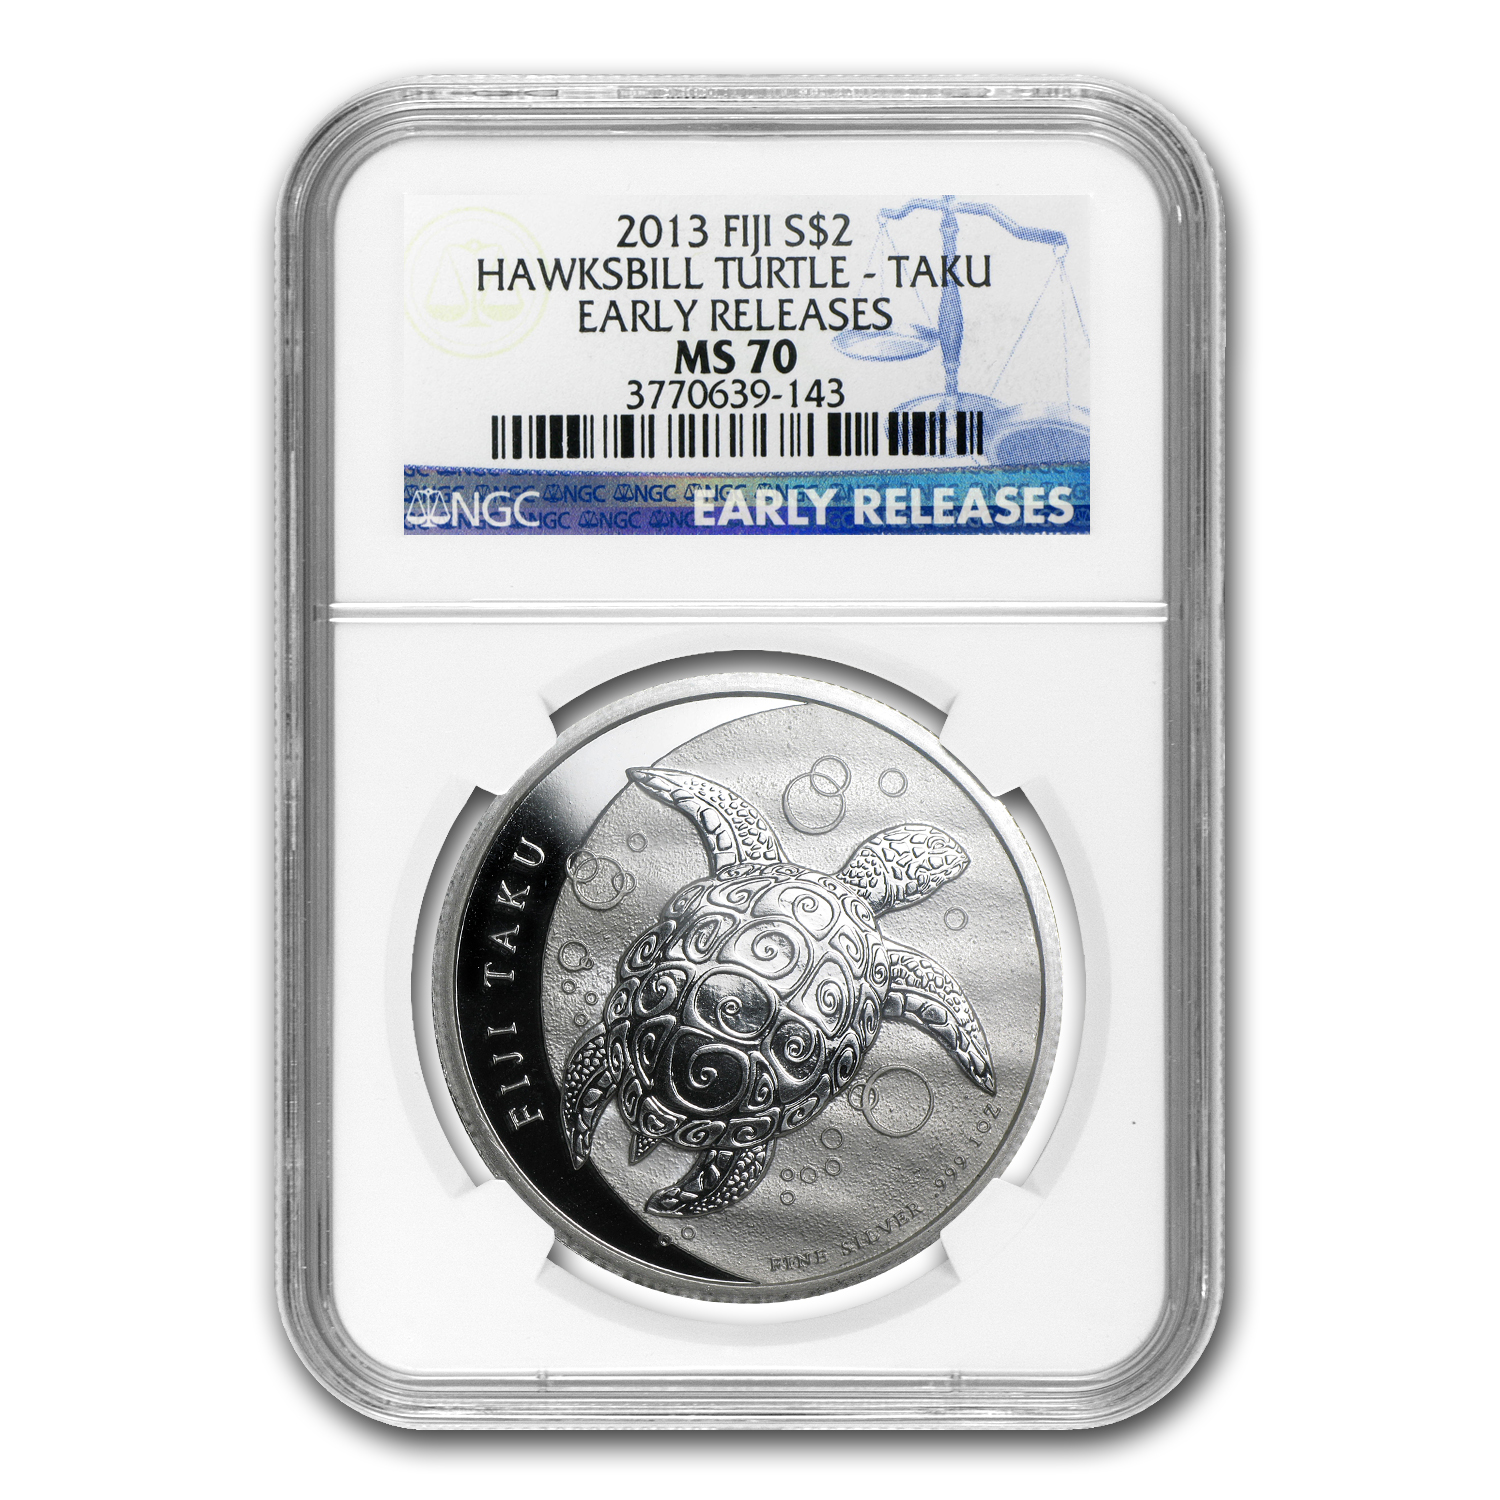 2013 Fiji 1 oz Silver $2 Taku MS-70 NGC (Early Release)